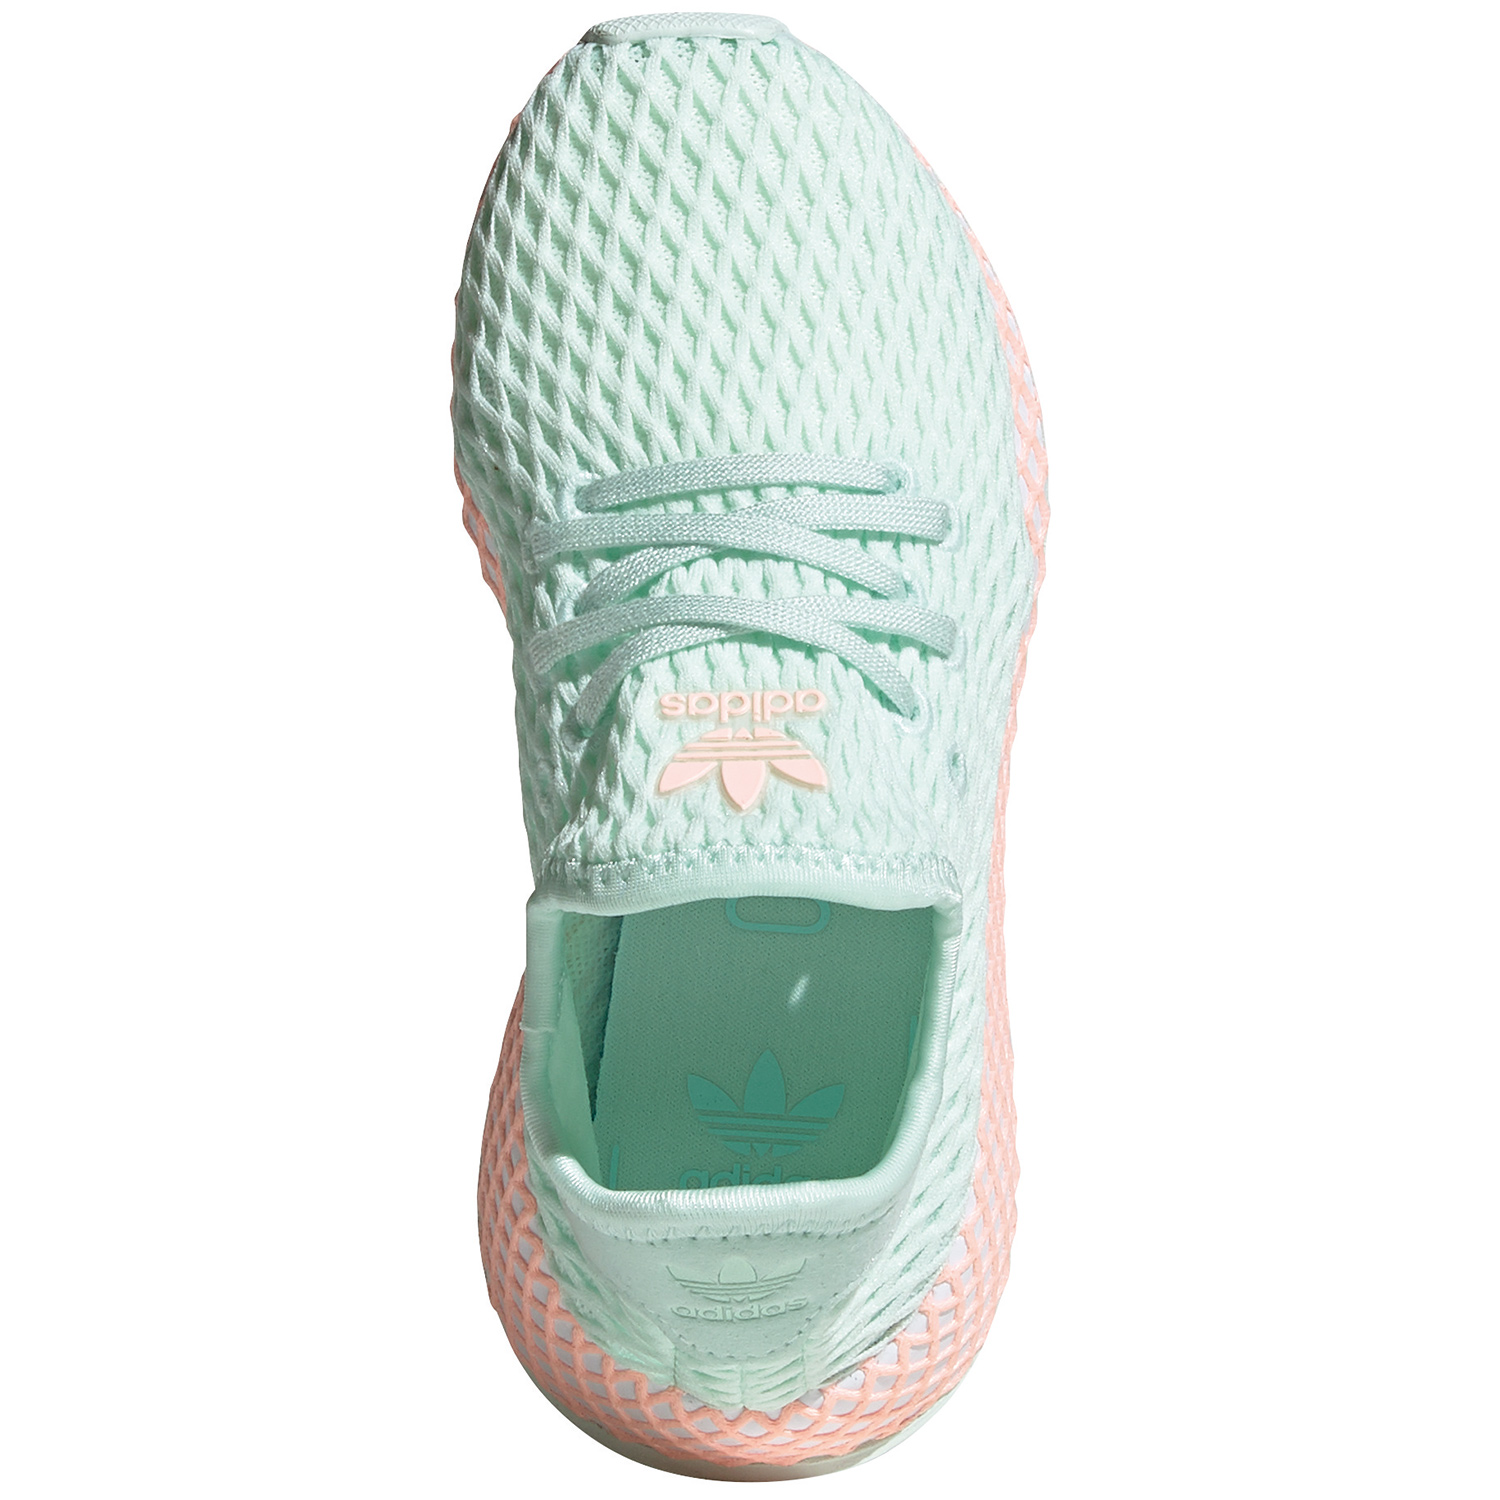 adidas Originals Deerupt Runner C Kinder Sneaker mint CG6851